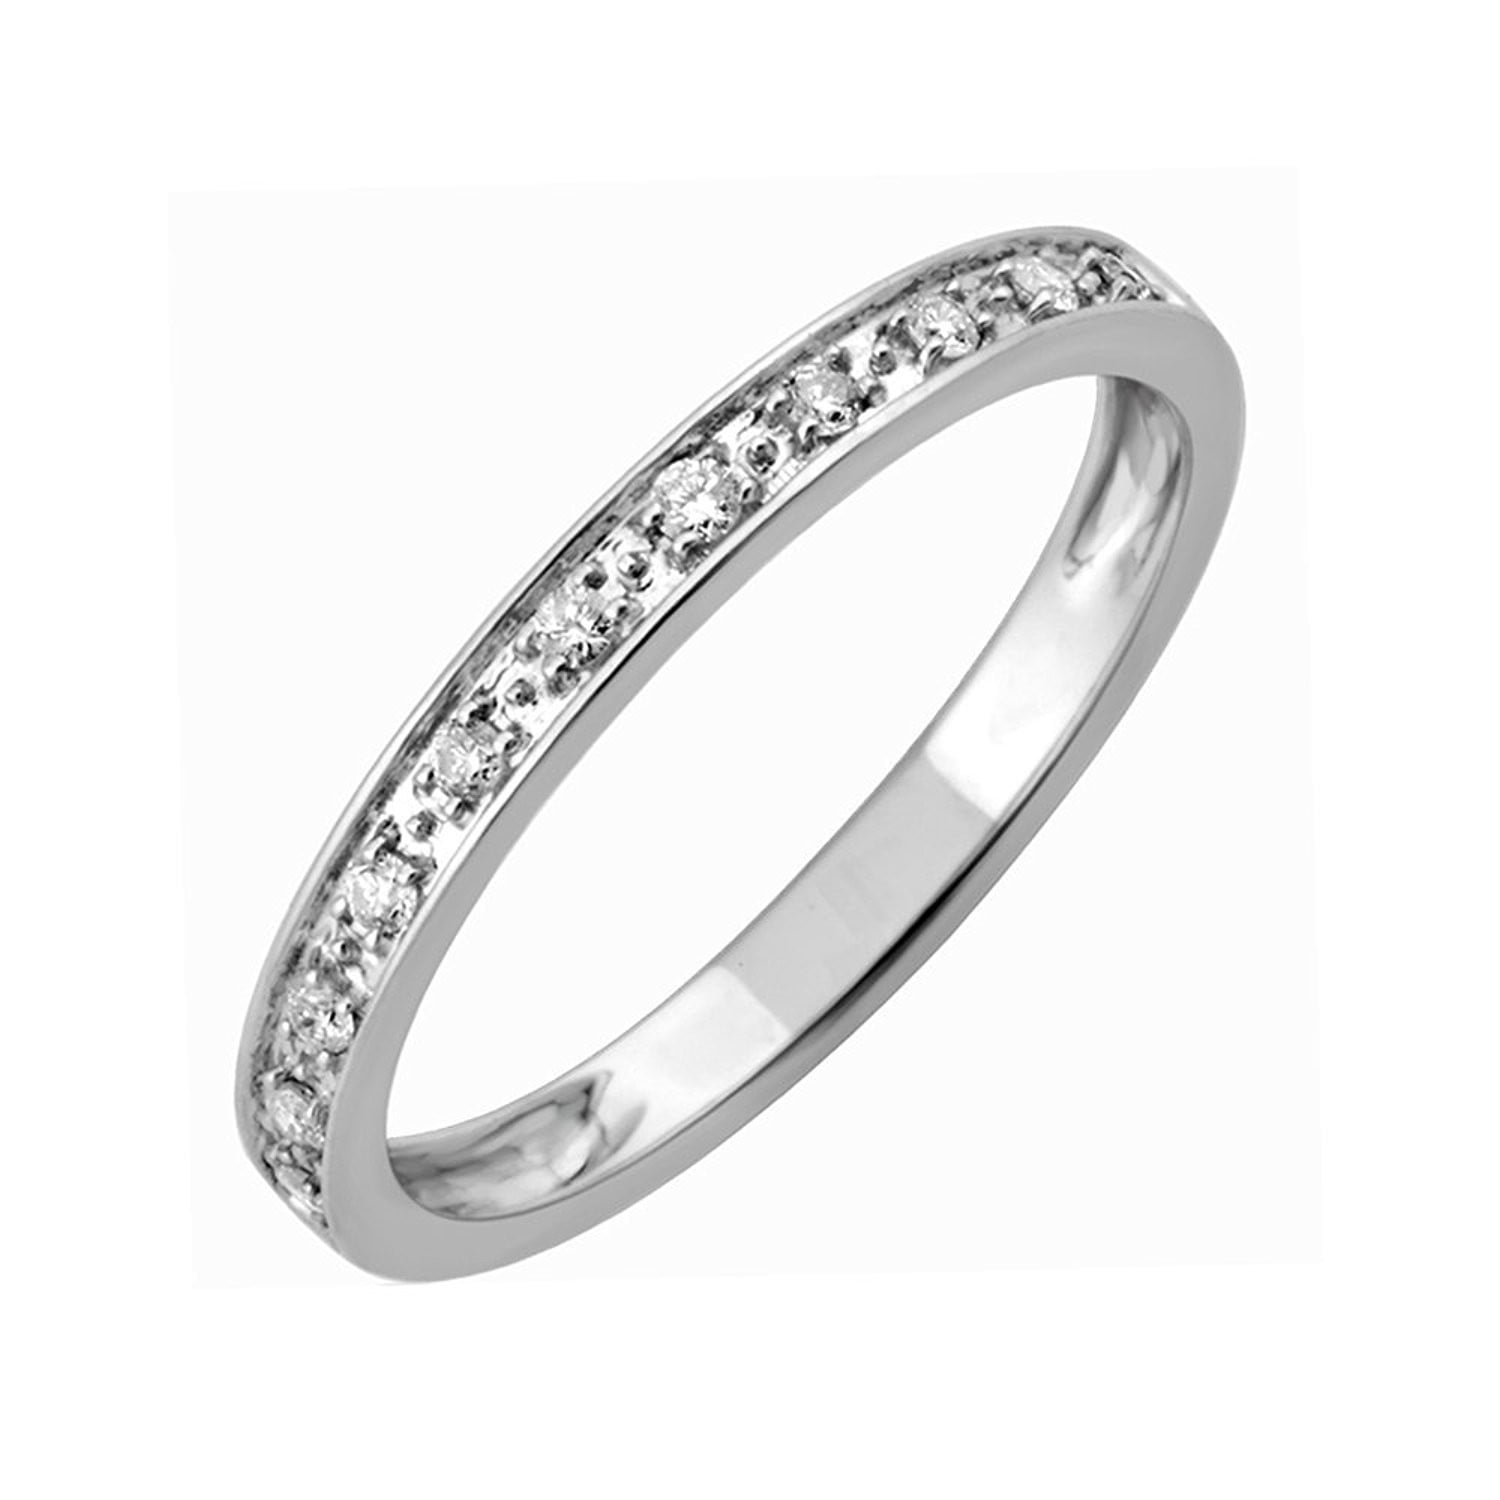 en rings diamond ring ip w wedding canada k eternity asteria t semi white gold walmart tw carat black